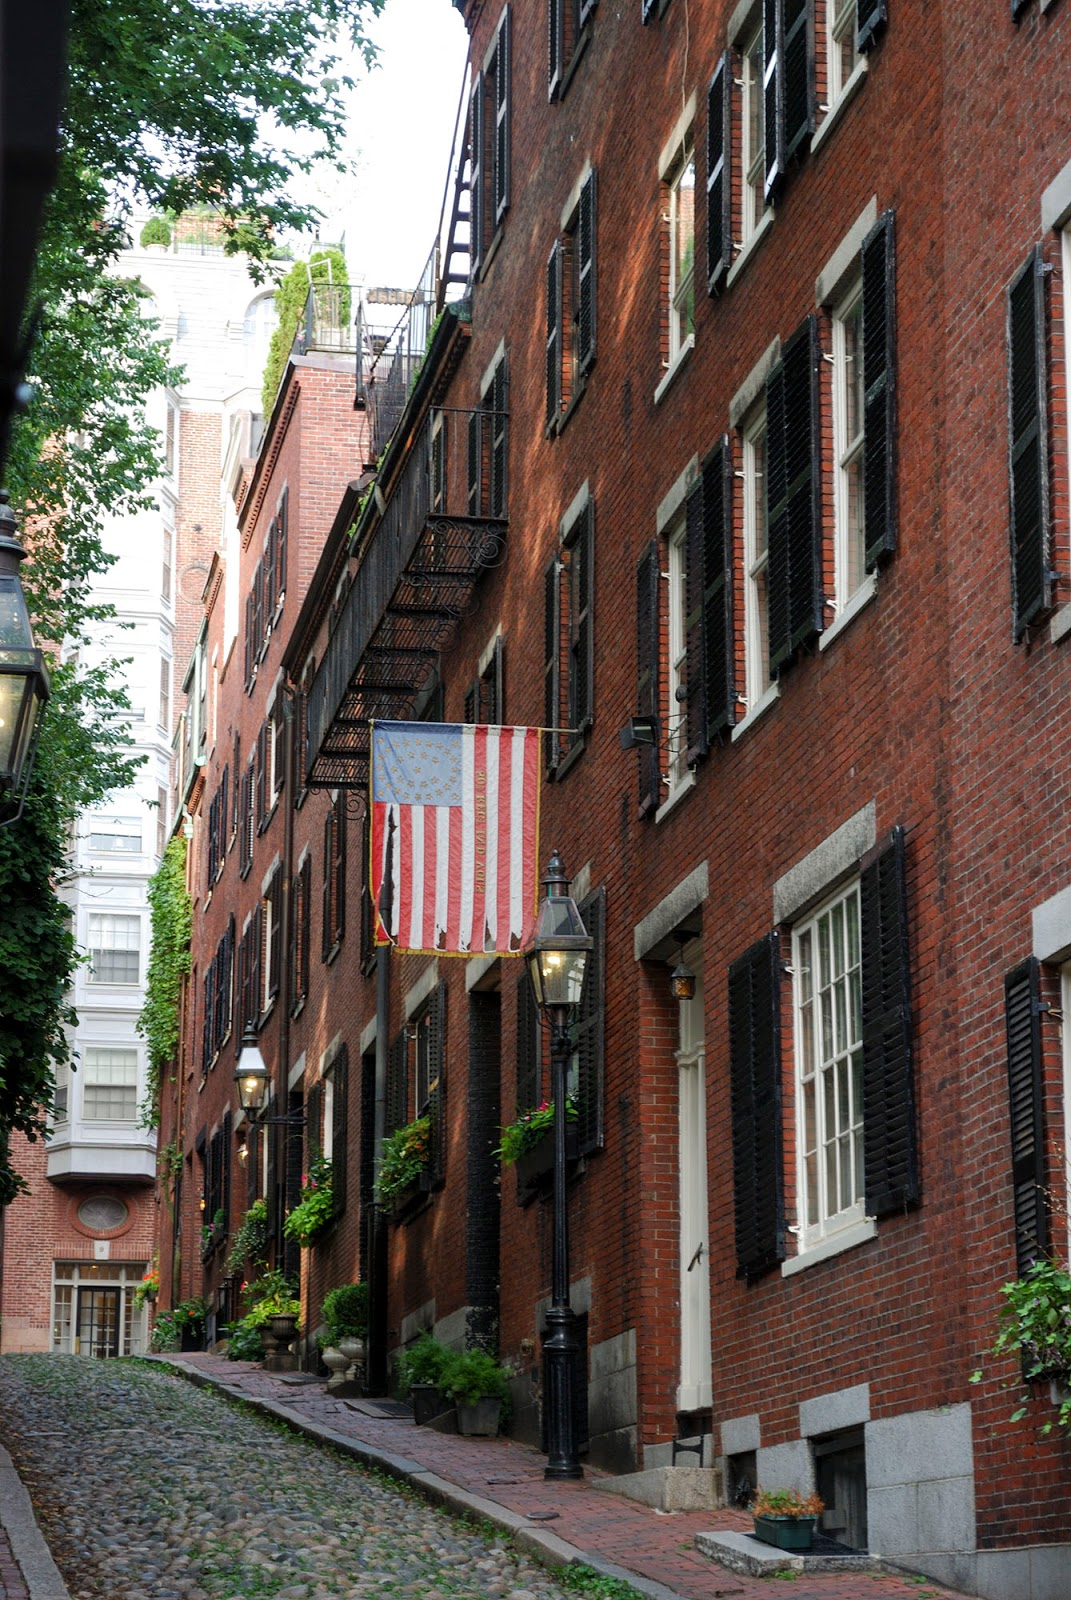 acorn street beacon hill boston map itinerary plan guide tourism usa america park east coast